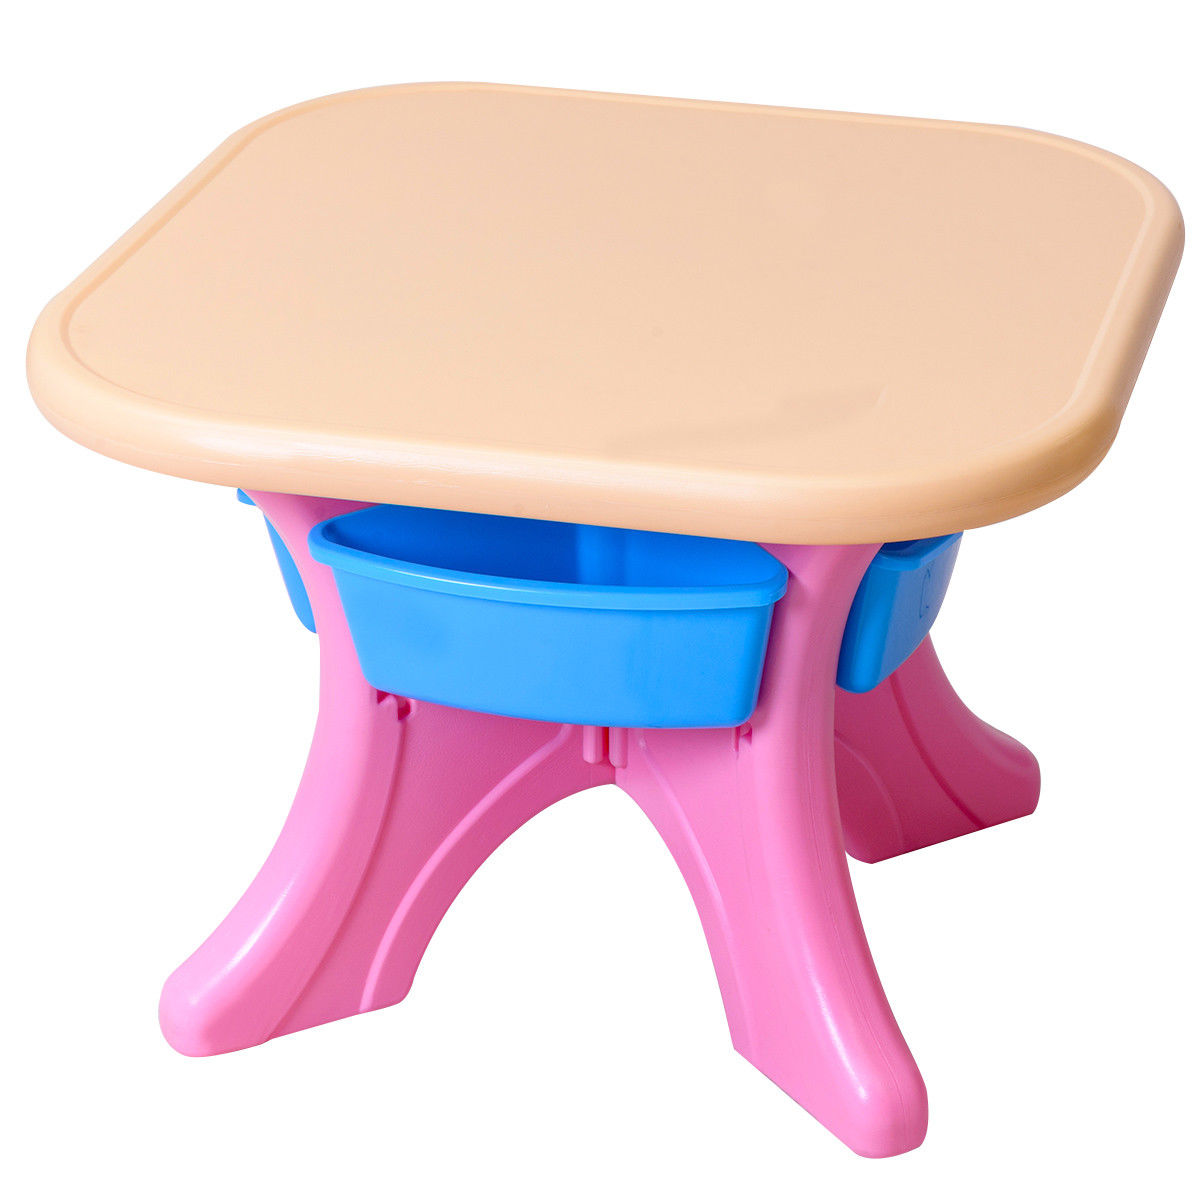 Plastic Kids Chairs Gymax Plastic Children Kids Table Chair Set 3 Pc Play Furniture